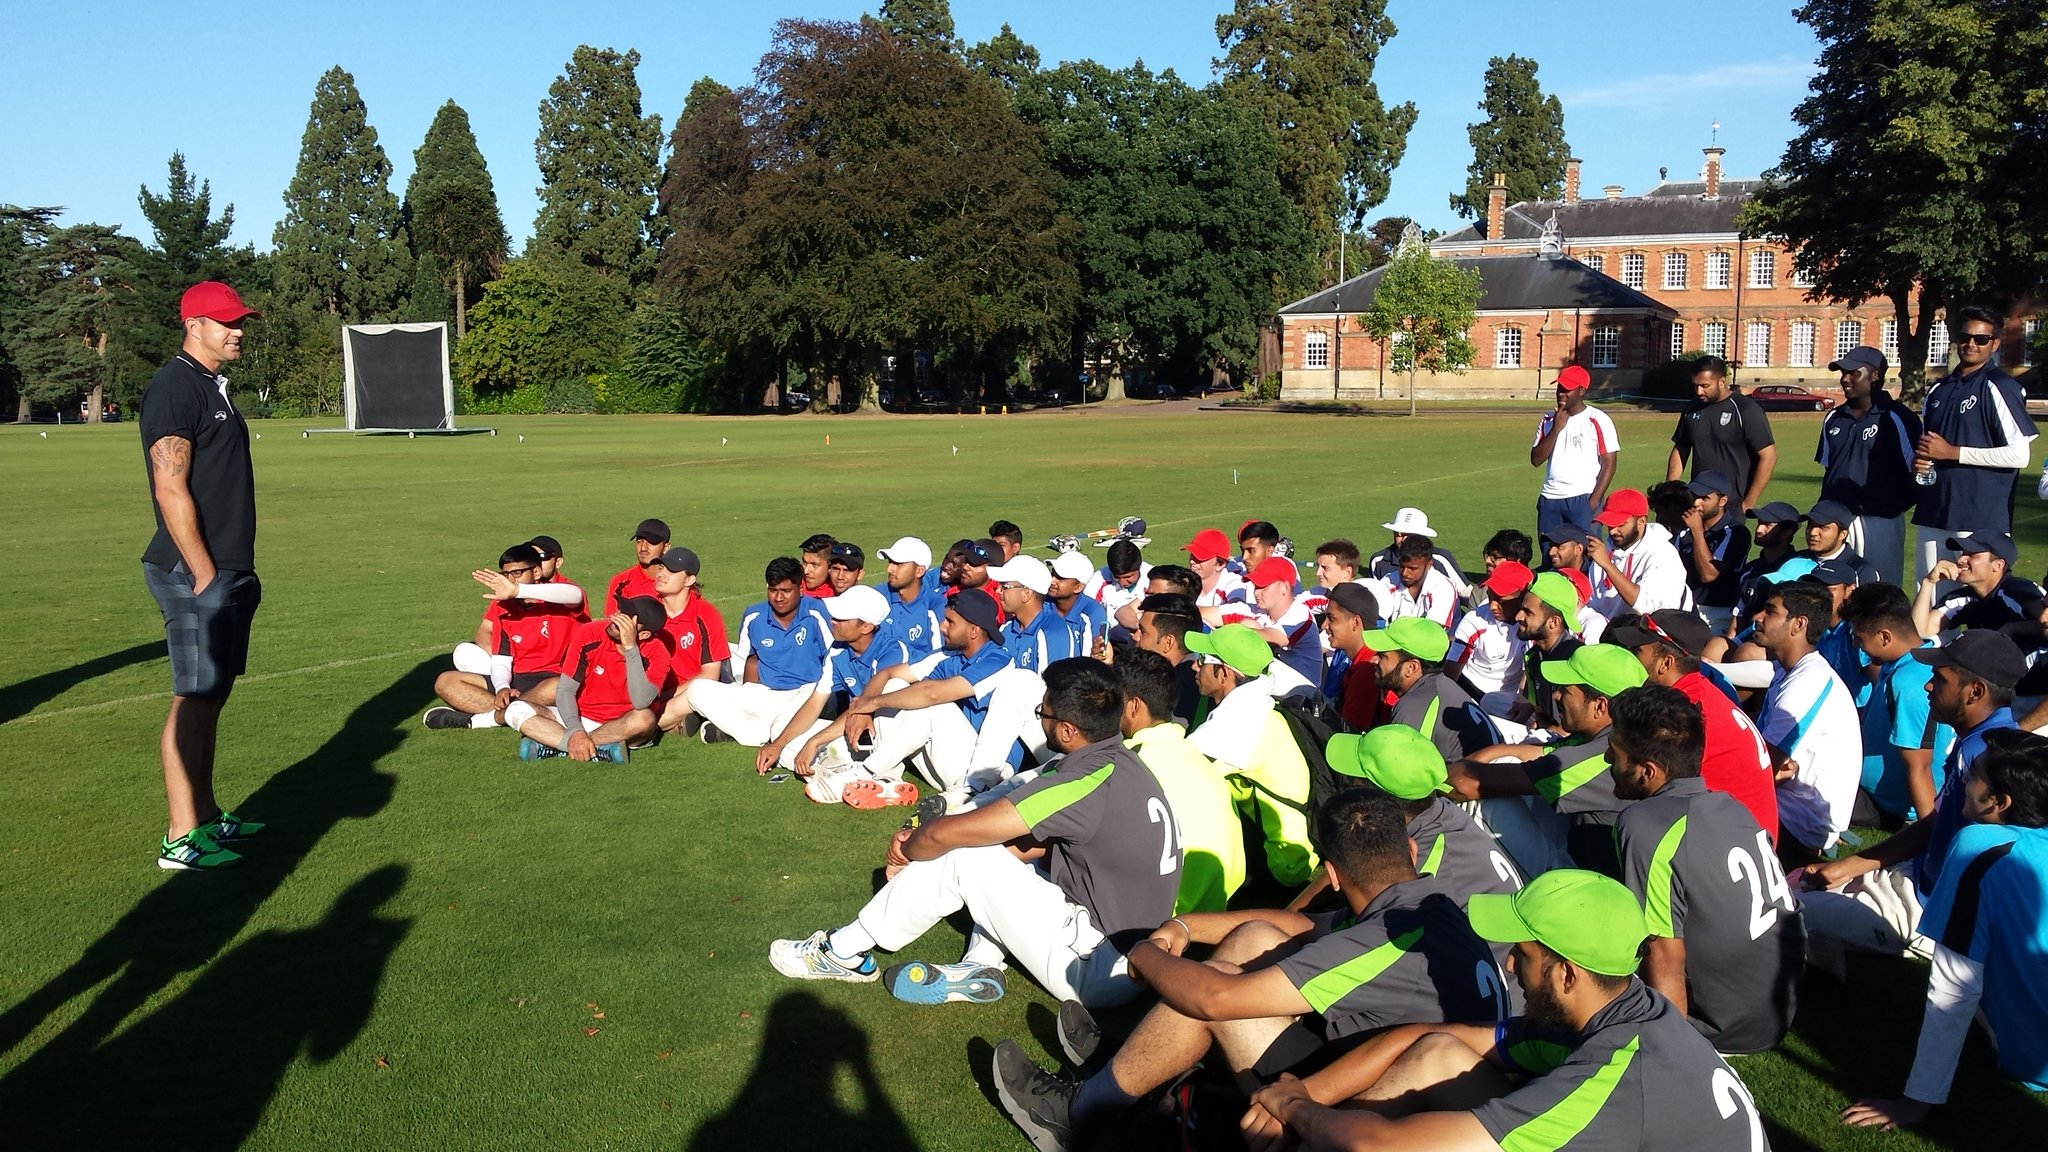 Listen to Theo Gordon & Sid Khan talk about their experience at the Kevin Pietersen camp